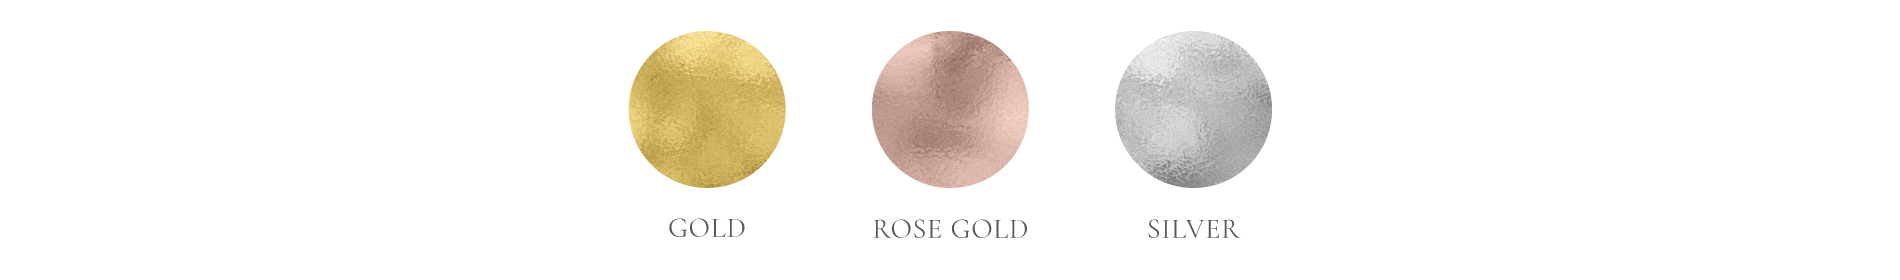 Foil colors - gold, rose gold, and silver.